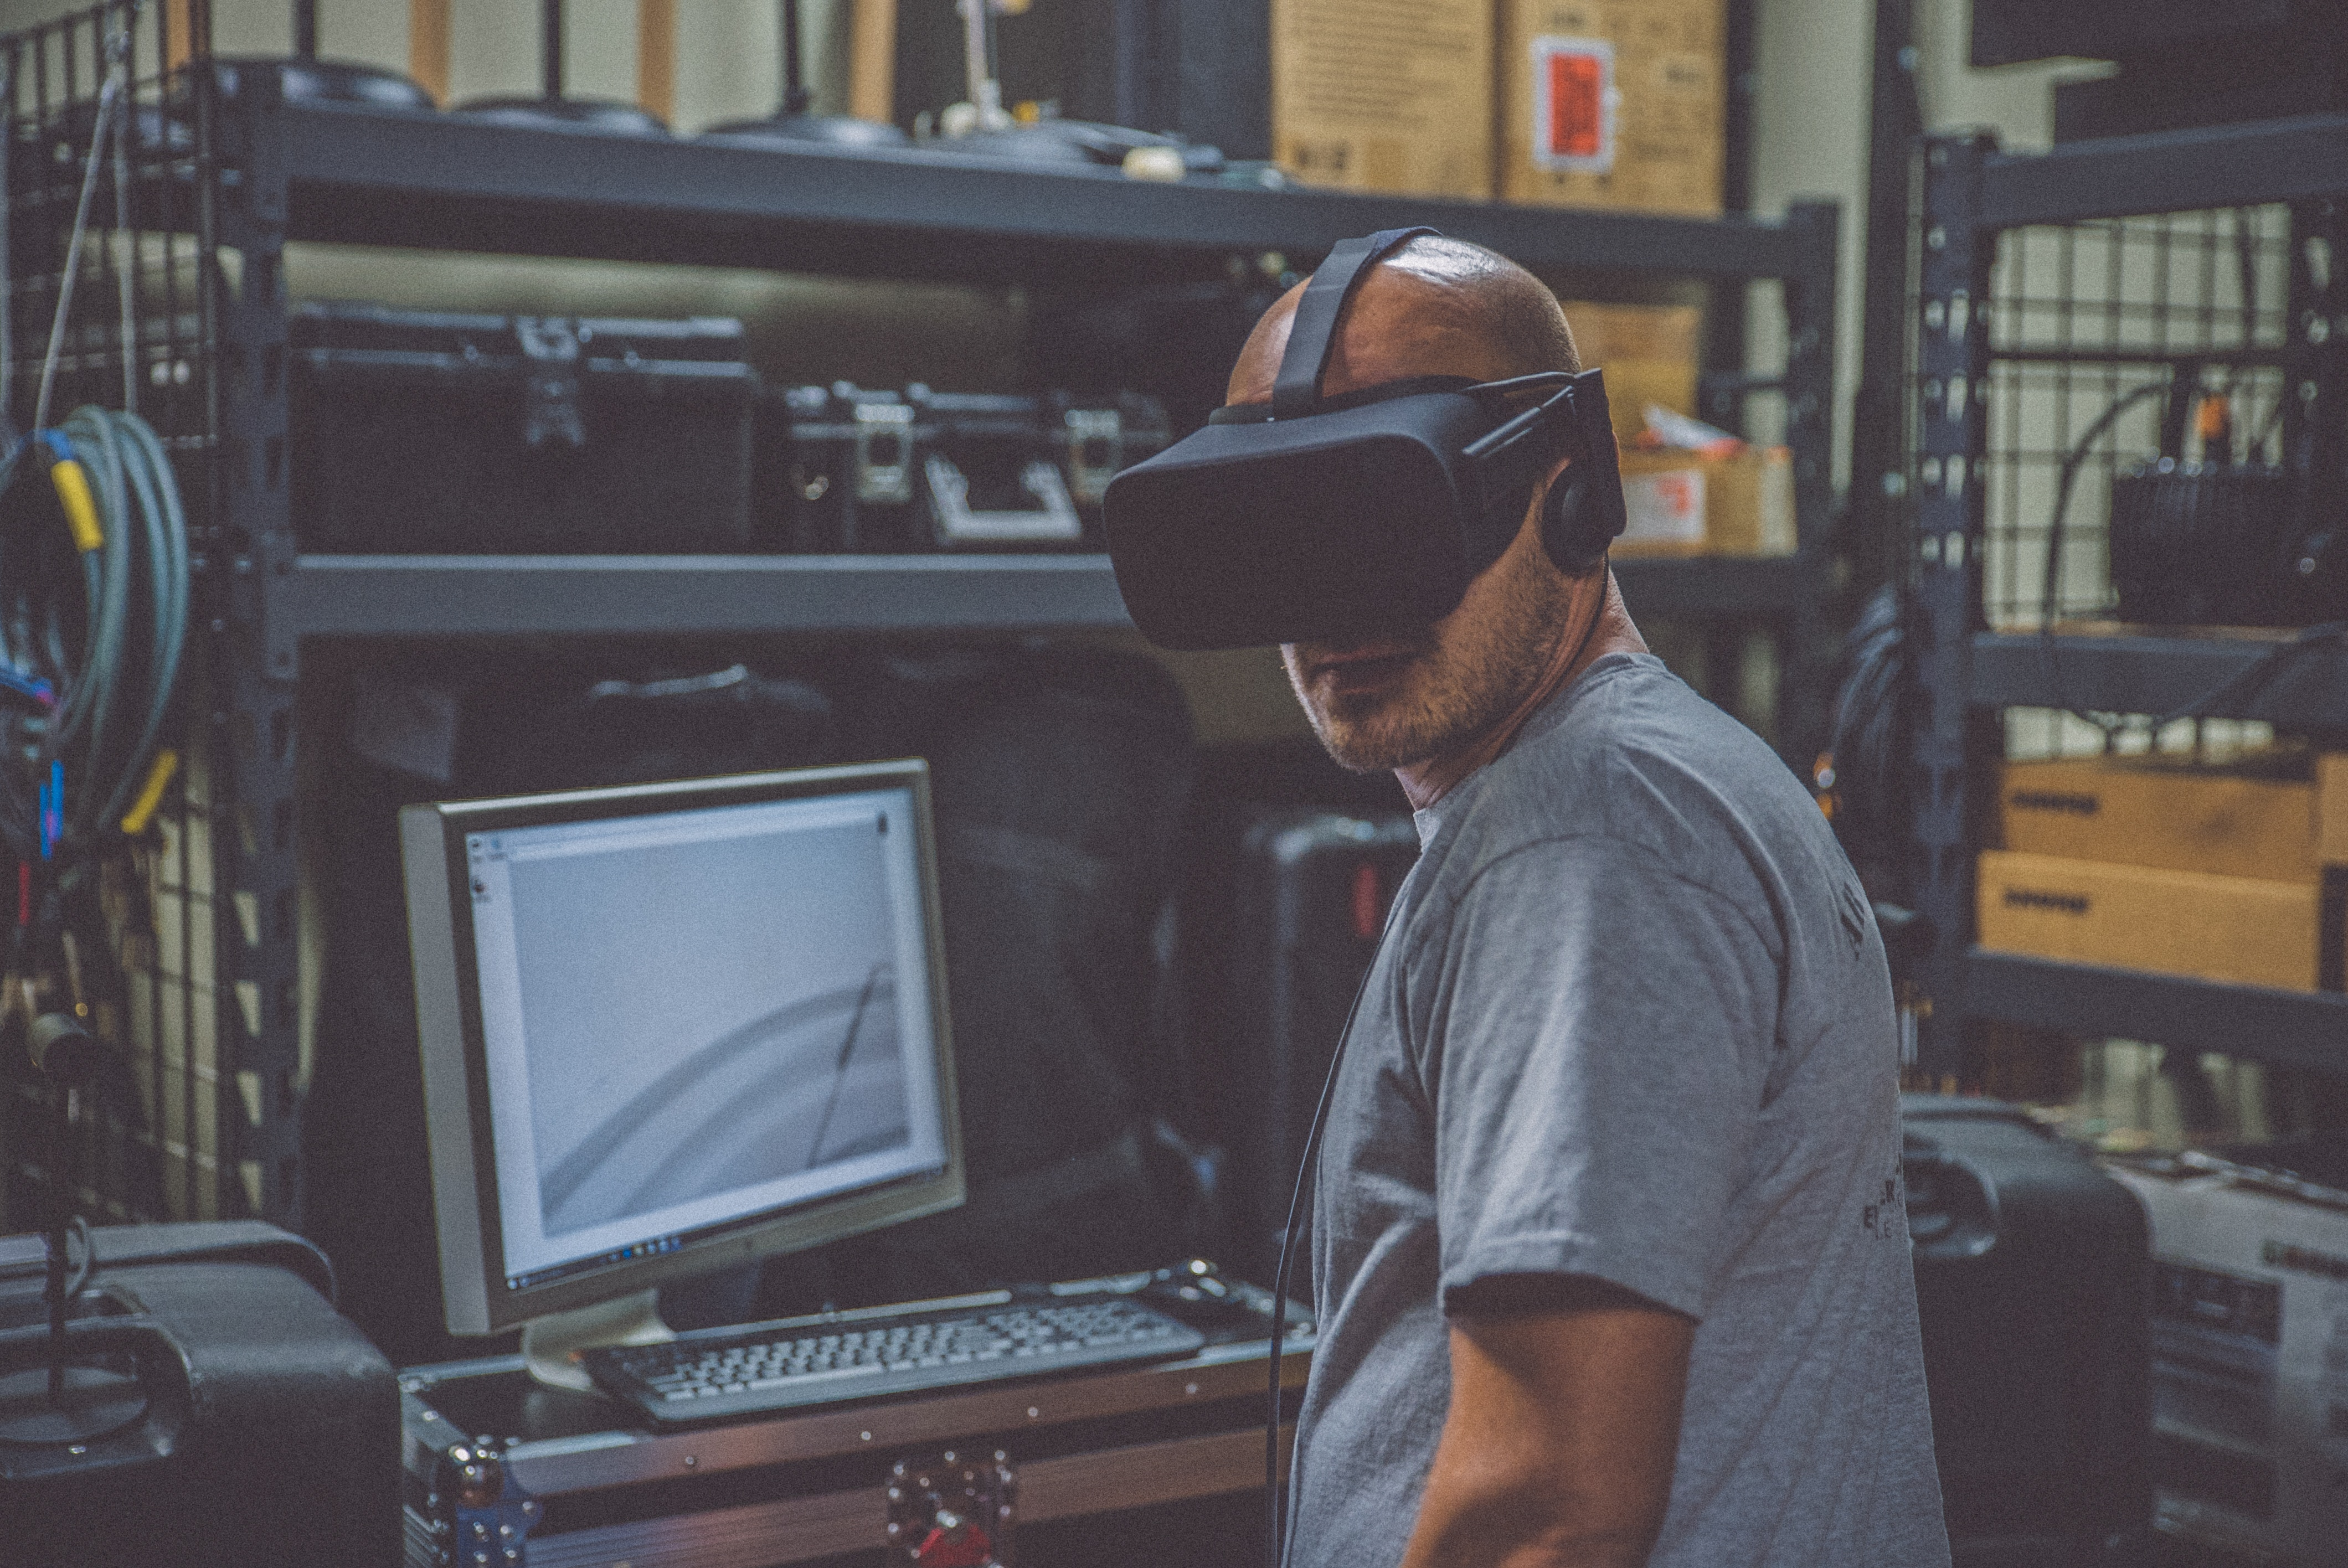 07288b9da21a It s hard for many to imagine tech like virtual reality (VR) and artificial  reality (AR) being used anywhere but the world of entertainment and video  games.